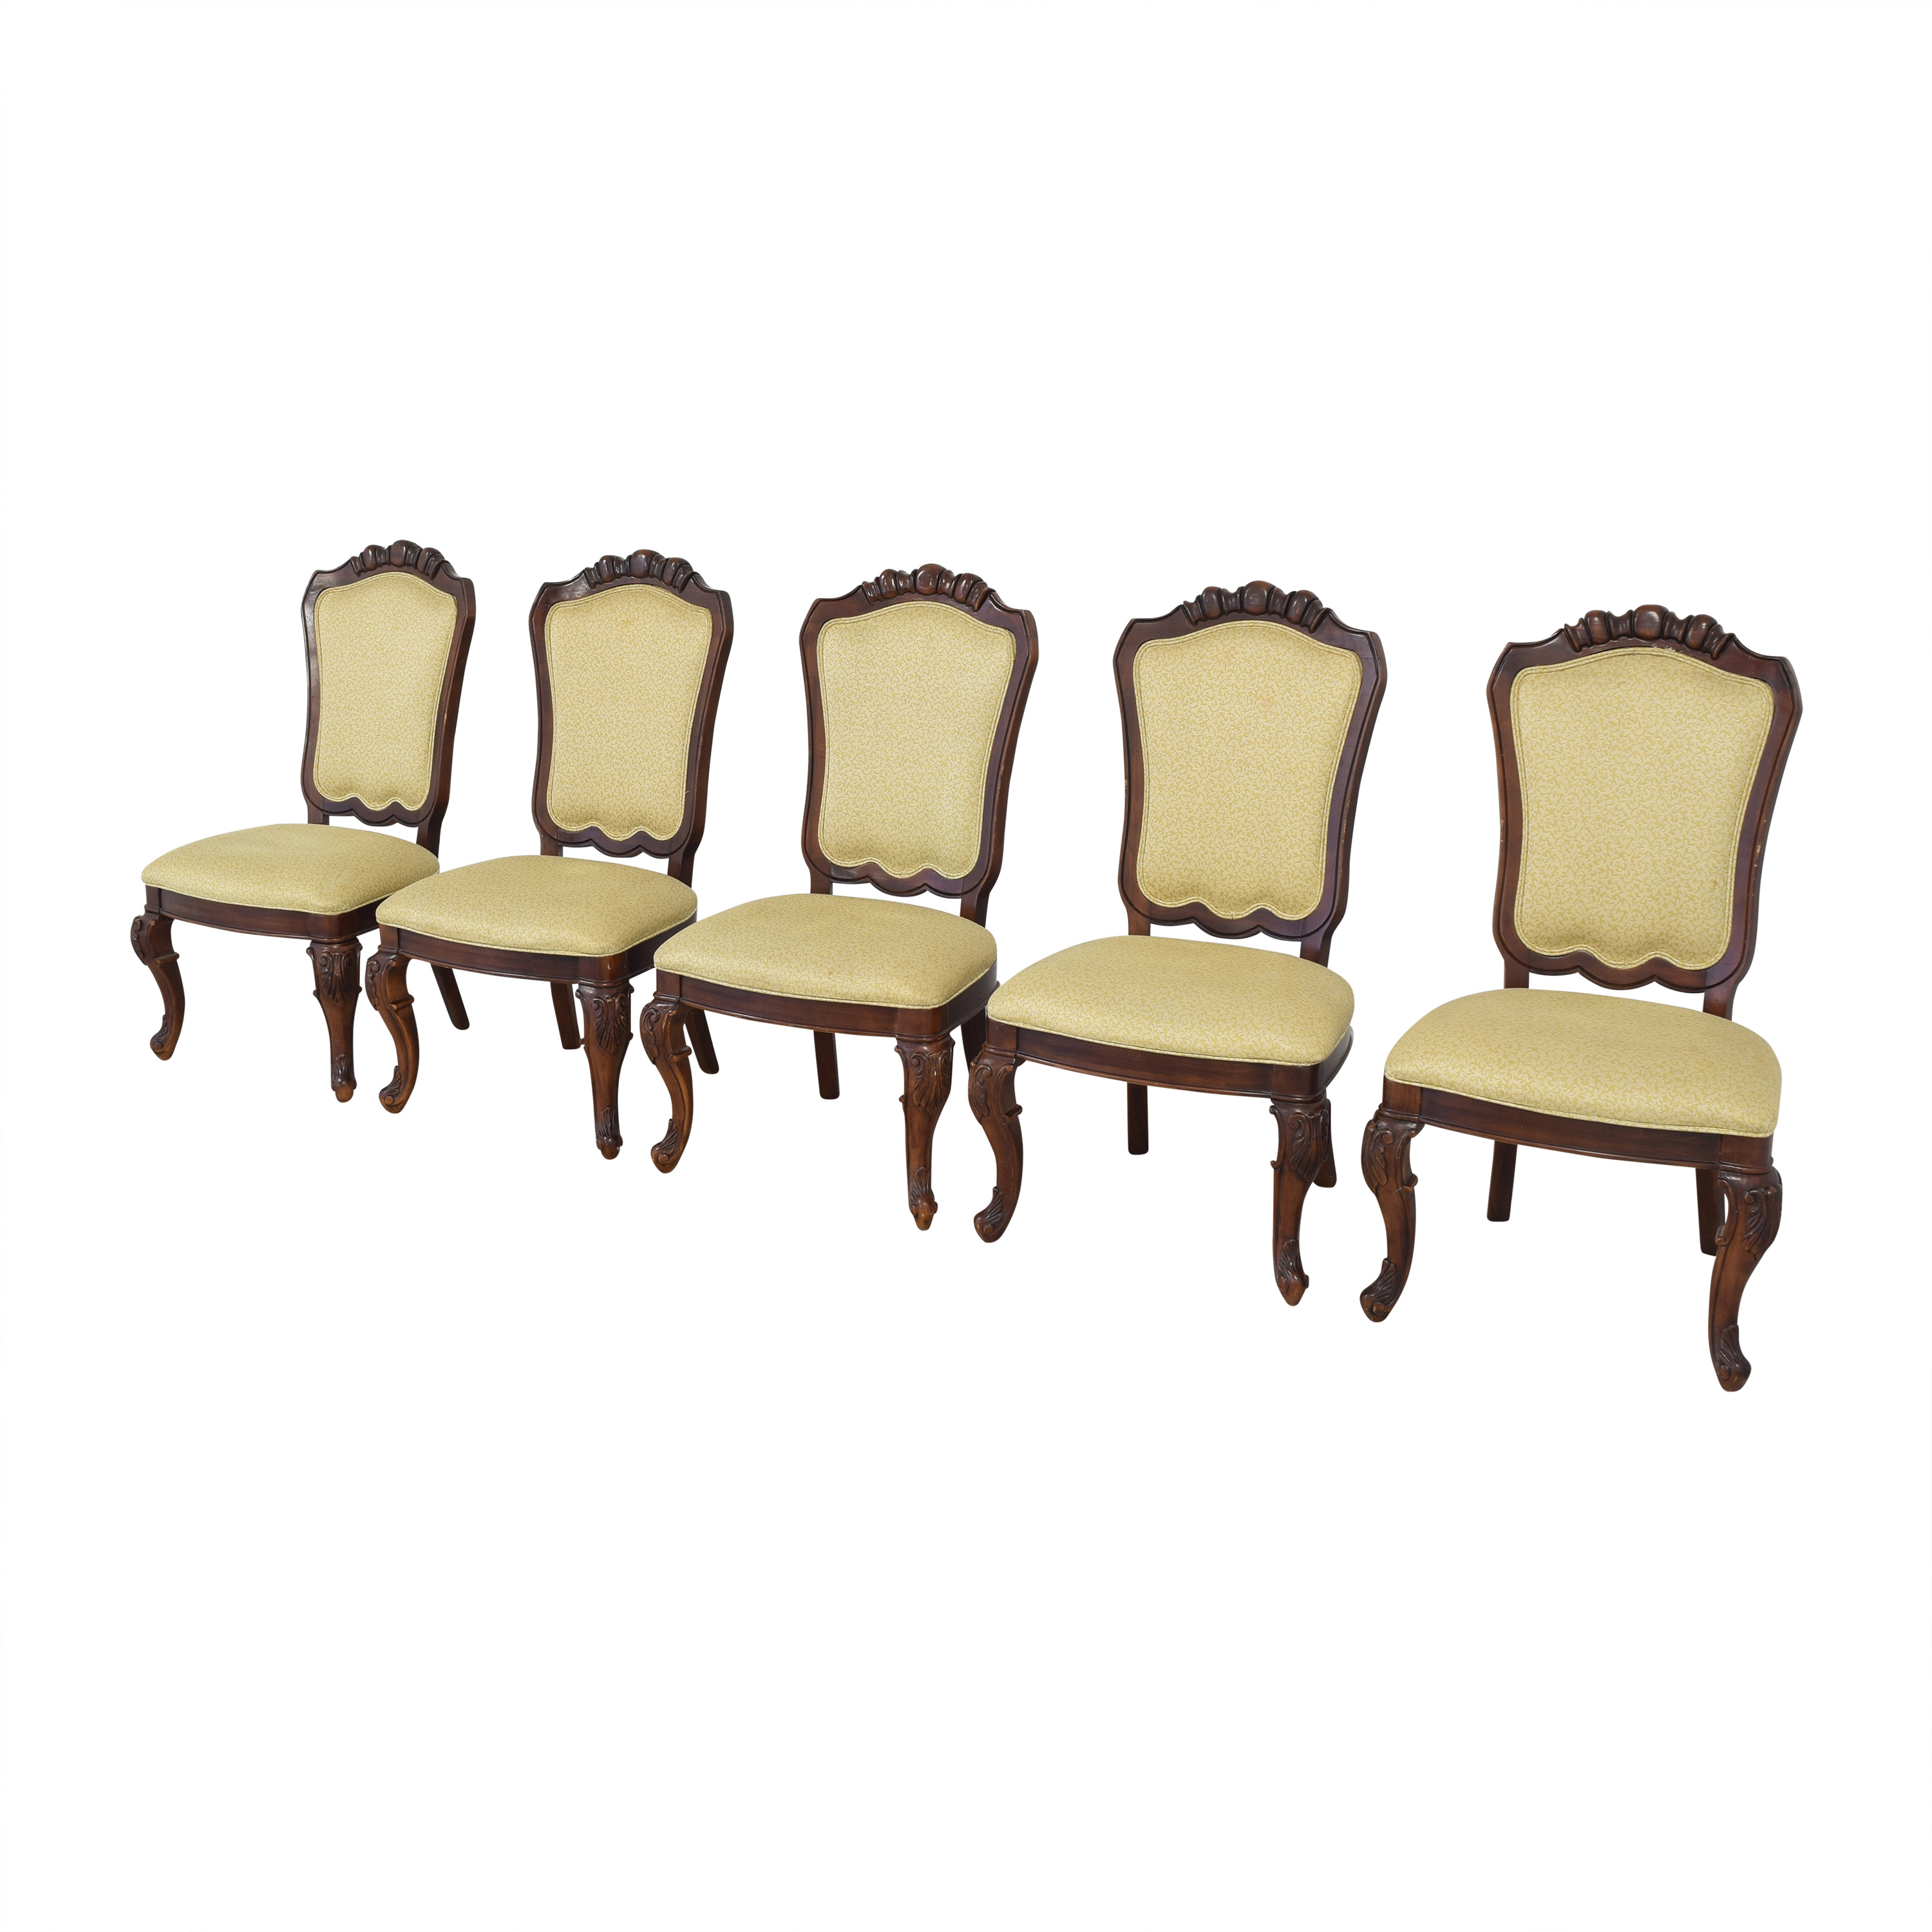 shop Thomasville Upholstered Dining Side Chairs Thomasville Chairs